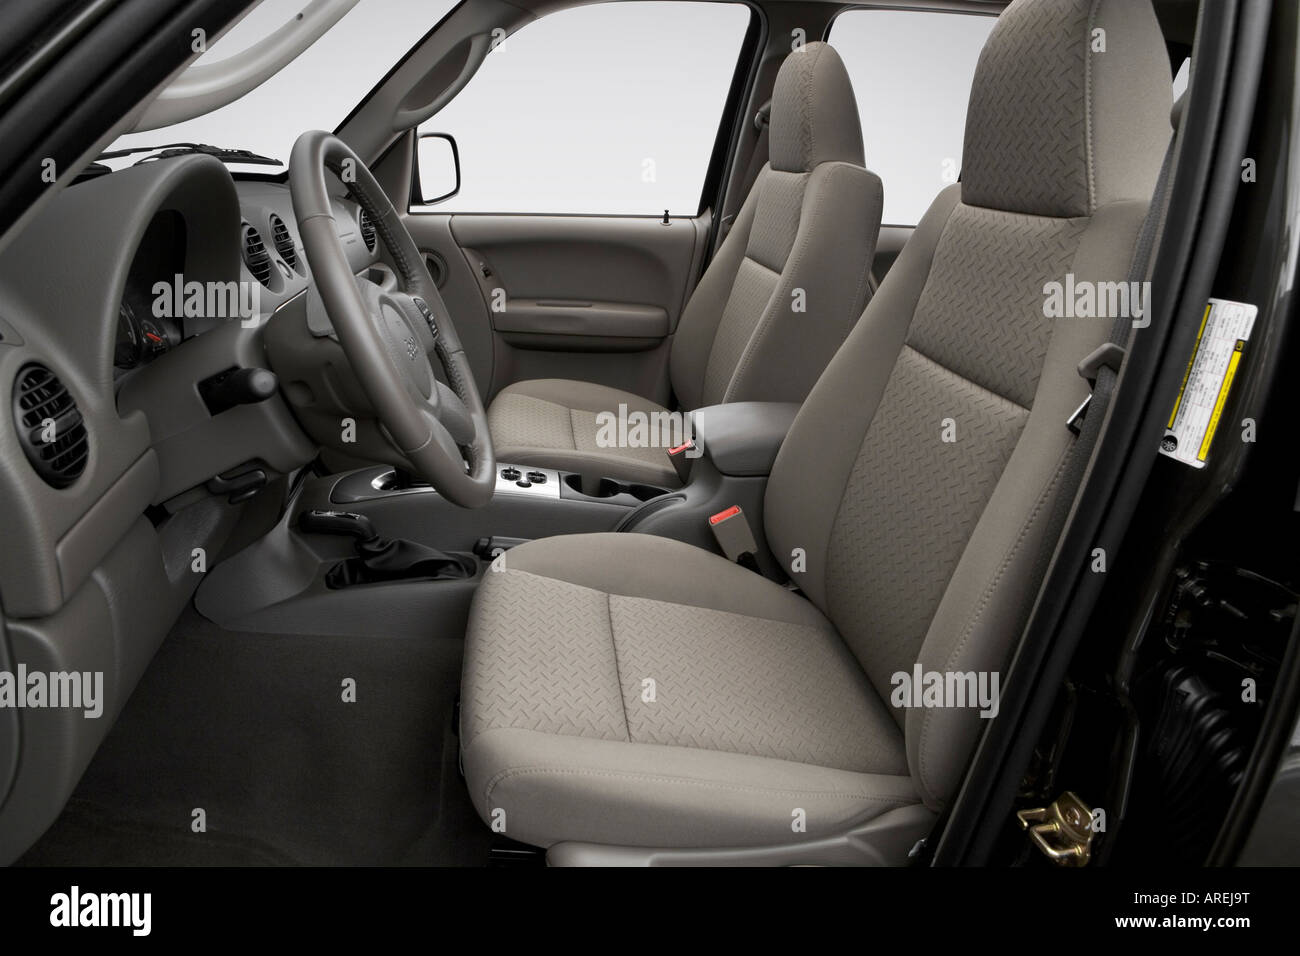 2006 jeep liberty renegade in beige - front seats stock photo